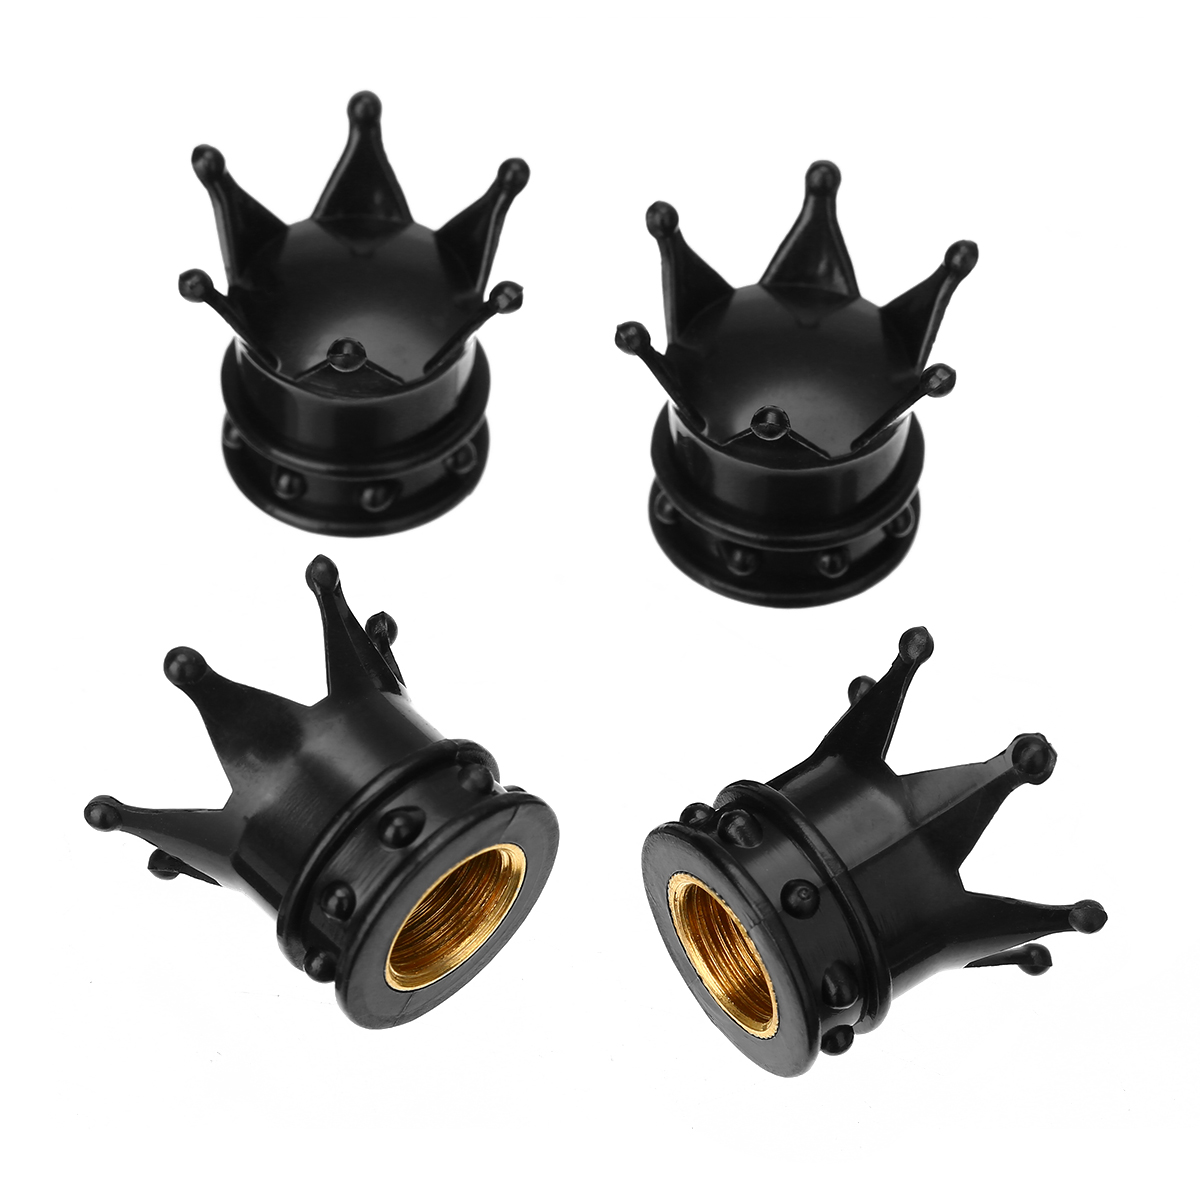 For Car Truck Bike Motorcycle Atv 4pcs Black Aluminum Car Wheel Tyre Tire Air Valve Stem Cap Dust Cover Crown Design Mayitr